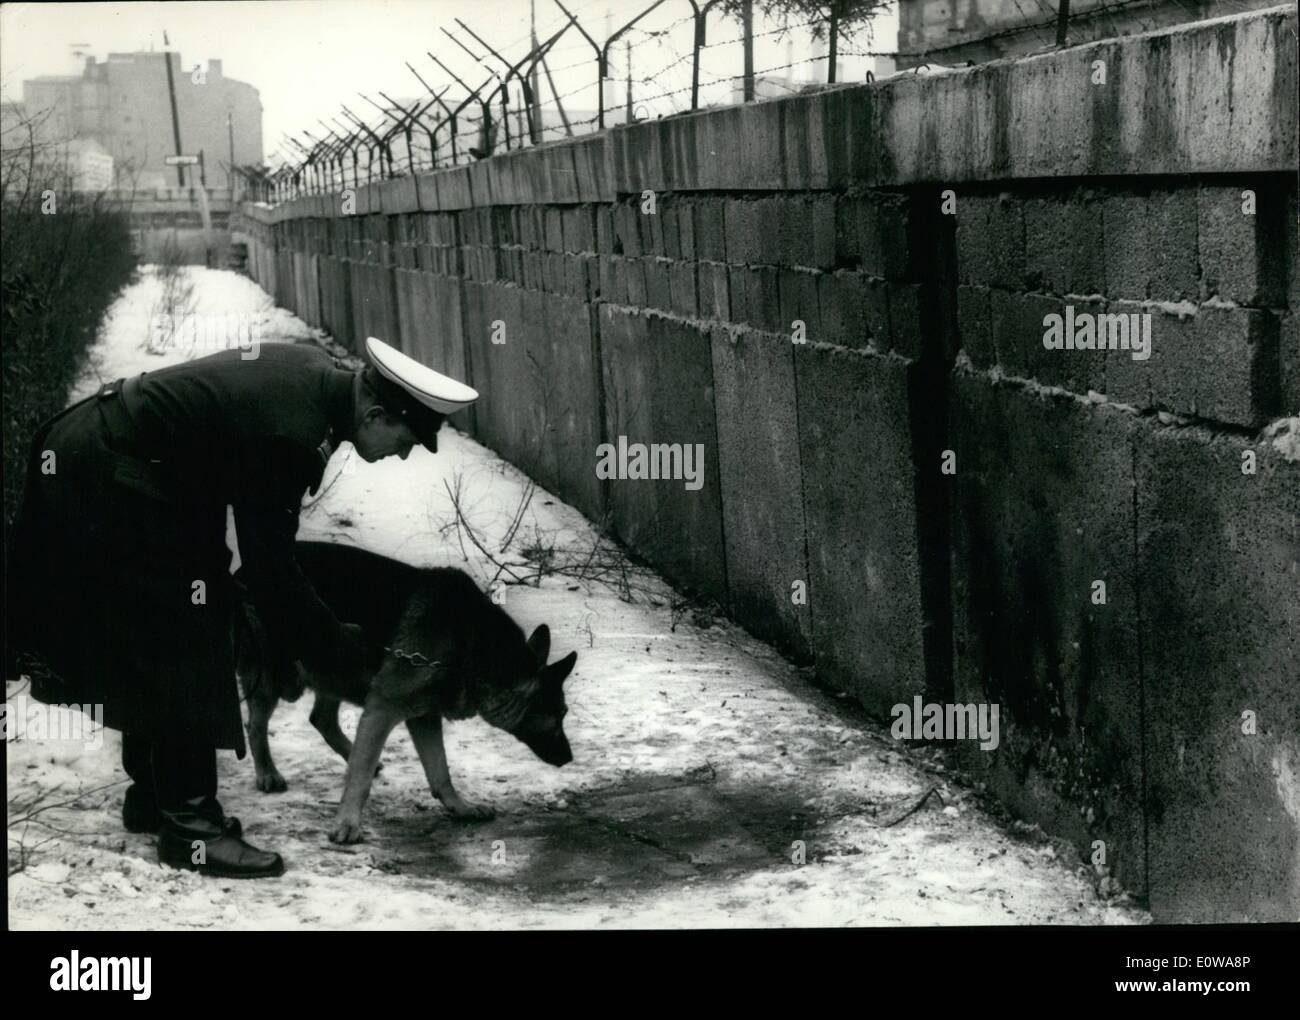 Mar. 03, 1962 - Explosives attempt against the wall in Berlin.: Today in the night unknown people has made an explosives attempt against the Communist wall in the West Berlin quarter Kreuzberg. The wall has only small hurts but a flat-house next in the windows. Photo shows a West - Berlin policeman with his service-dog inquires the place of the explosion at the communists wall. - Stock Image